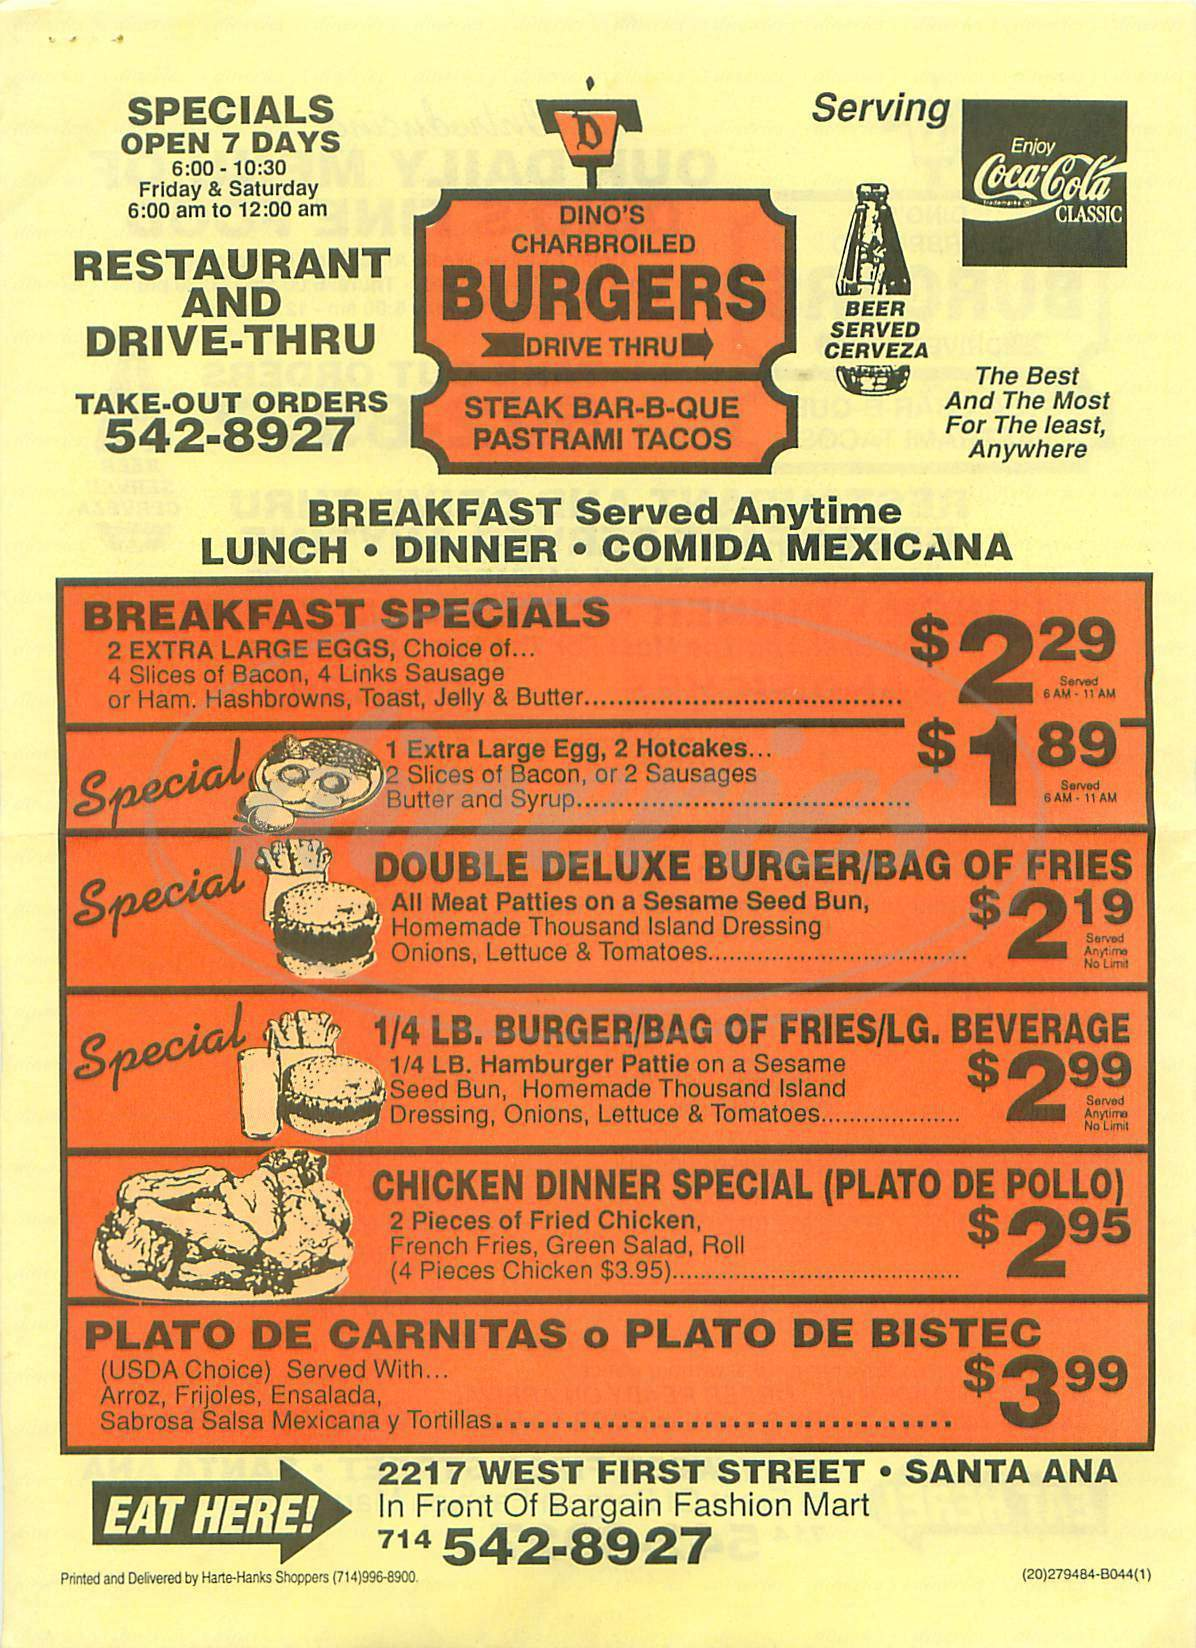 menu for Dino's Charbroiled Burgers